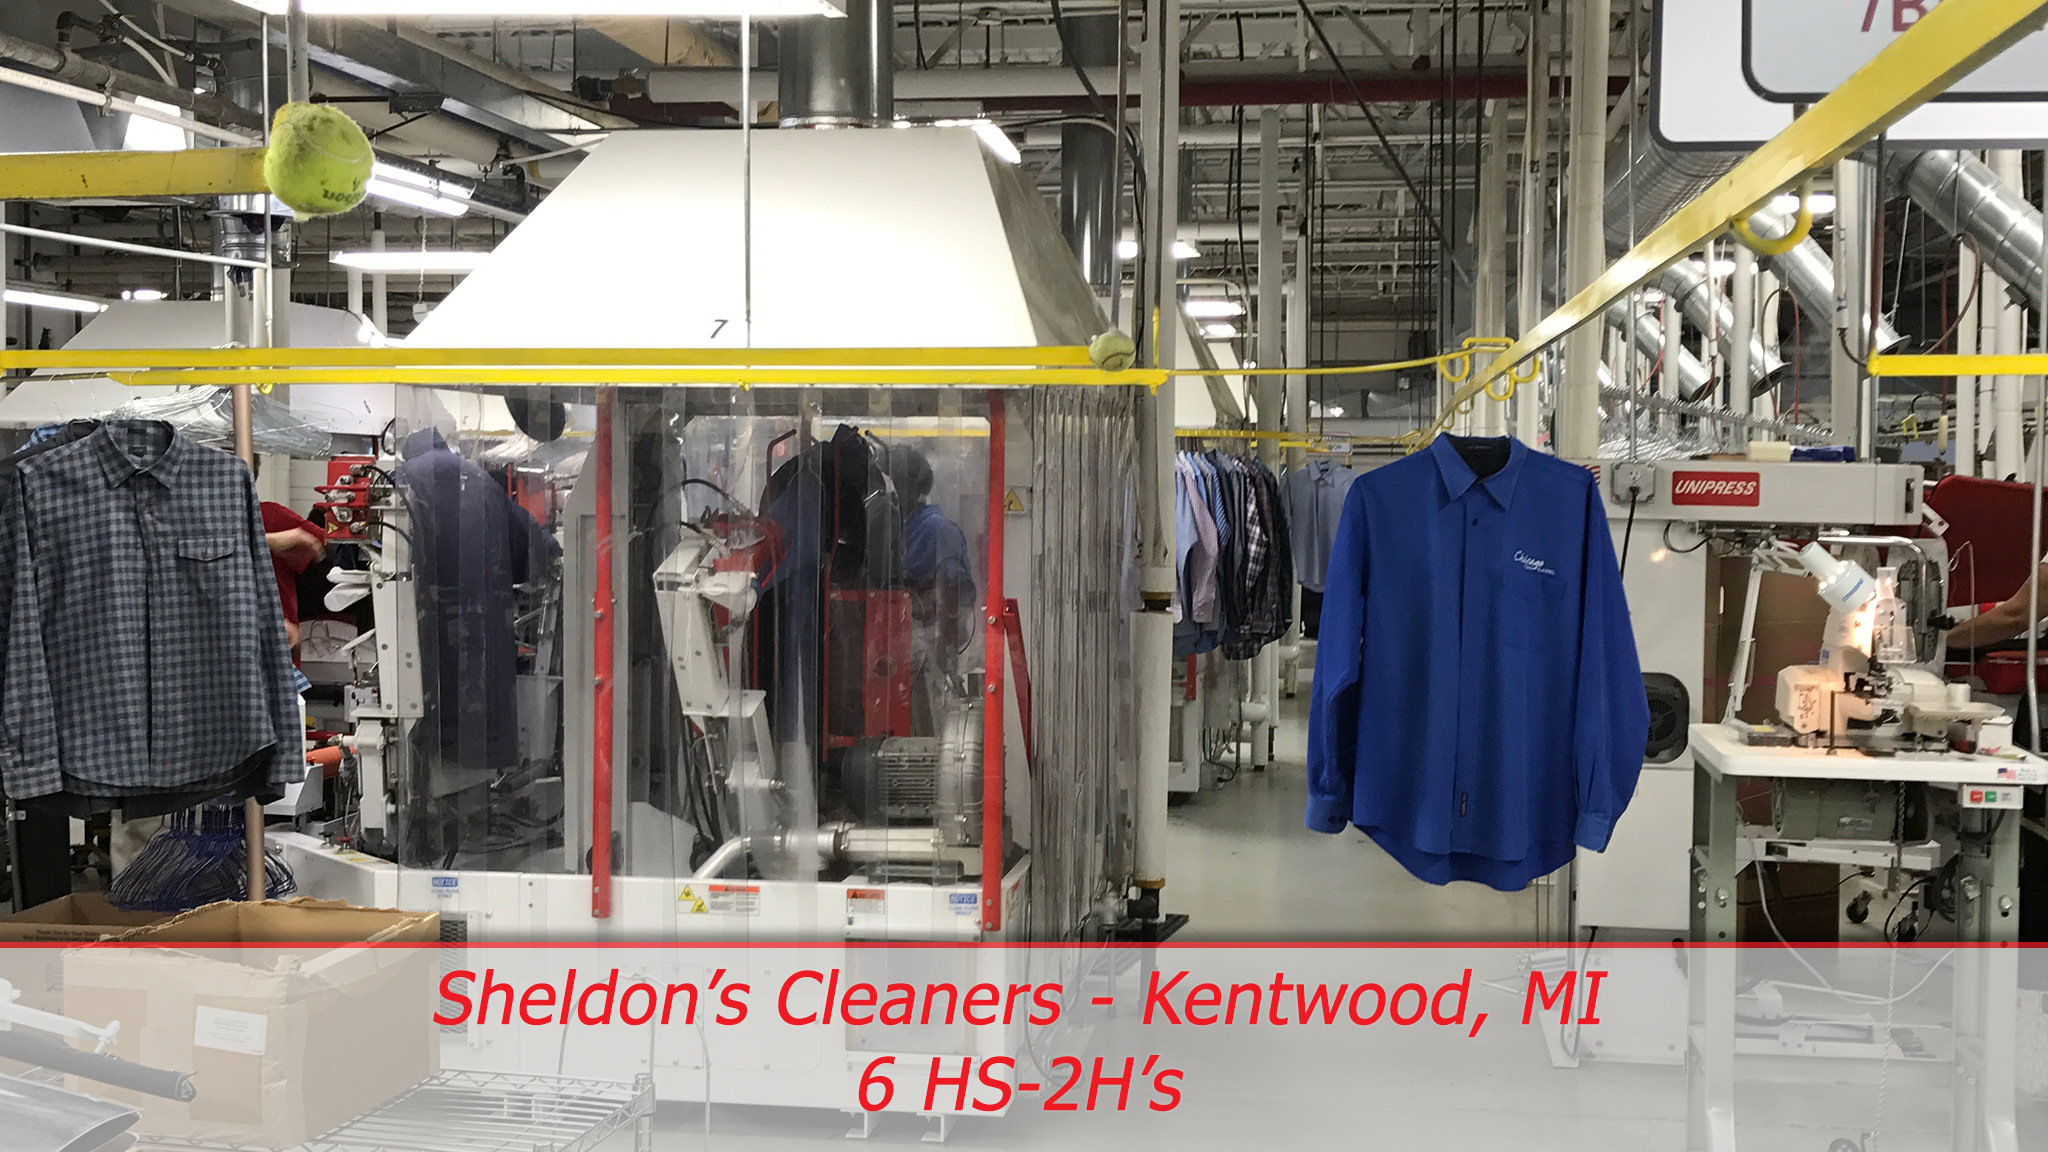 Sheldon's Cleaners